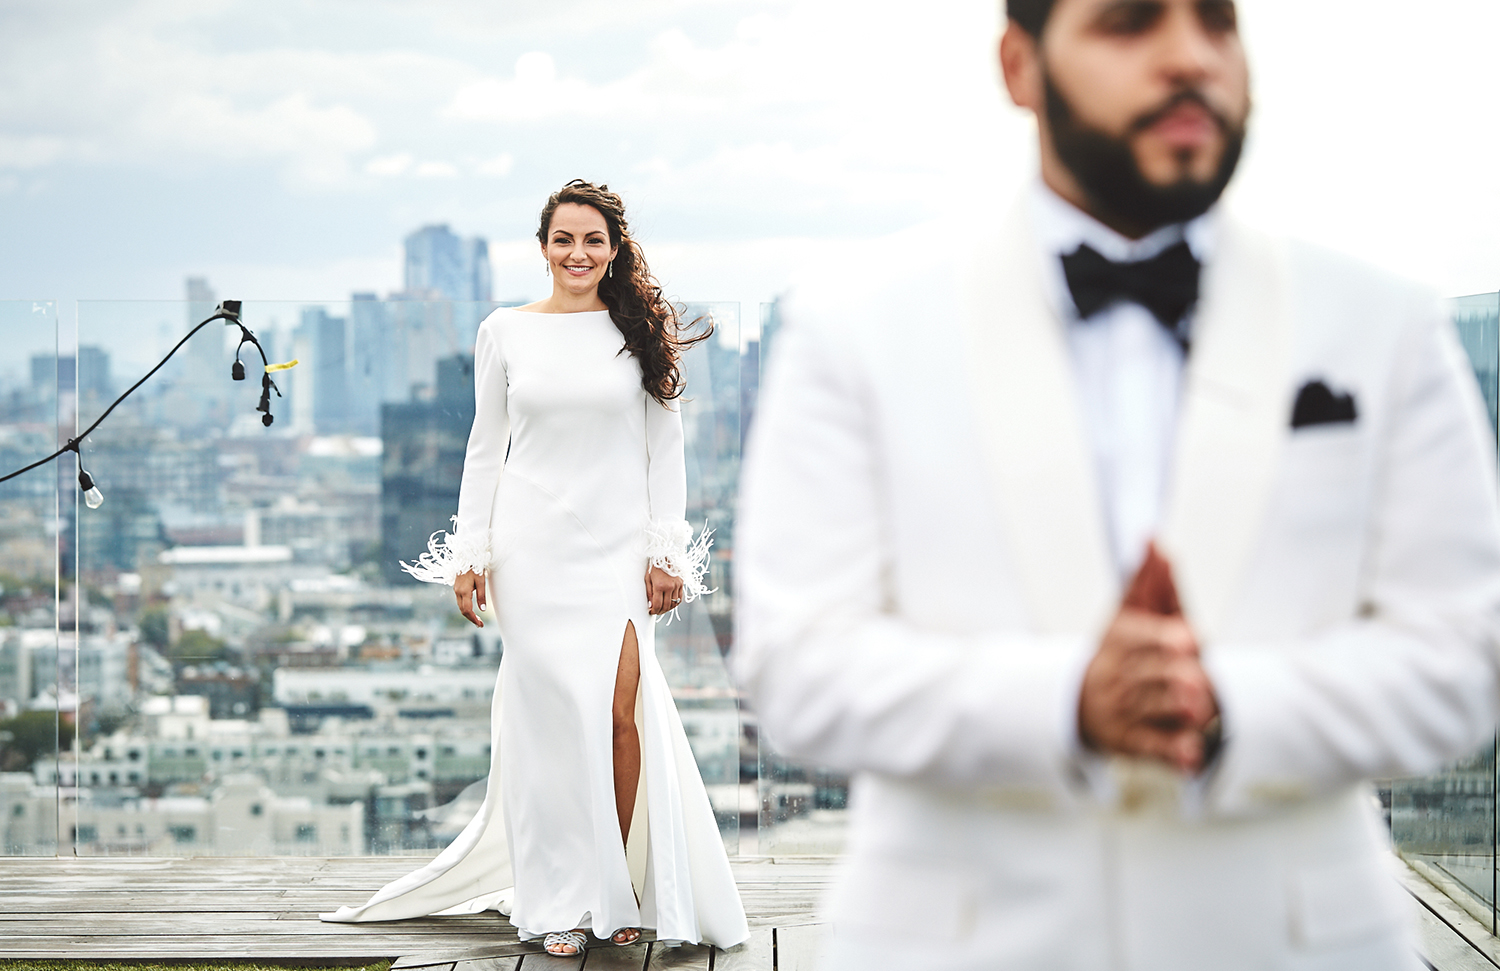 170930_WilliamValeWeddingPhotography_BrooklynWeddingPhotographer_By_BriJohnsonWeddings_0065.jpg